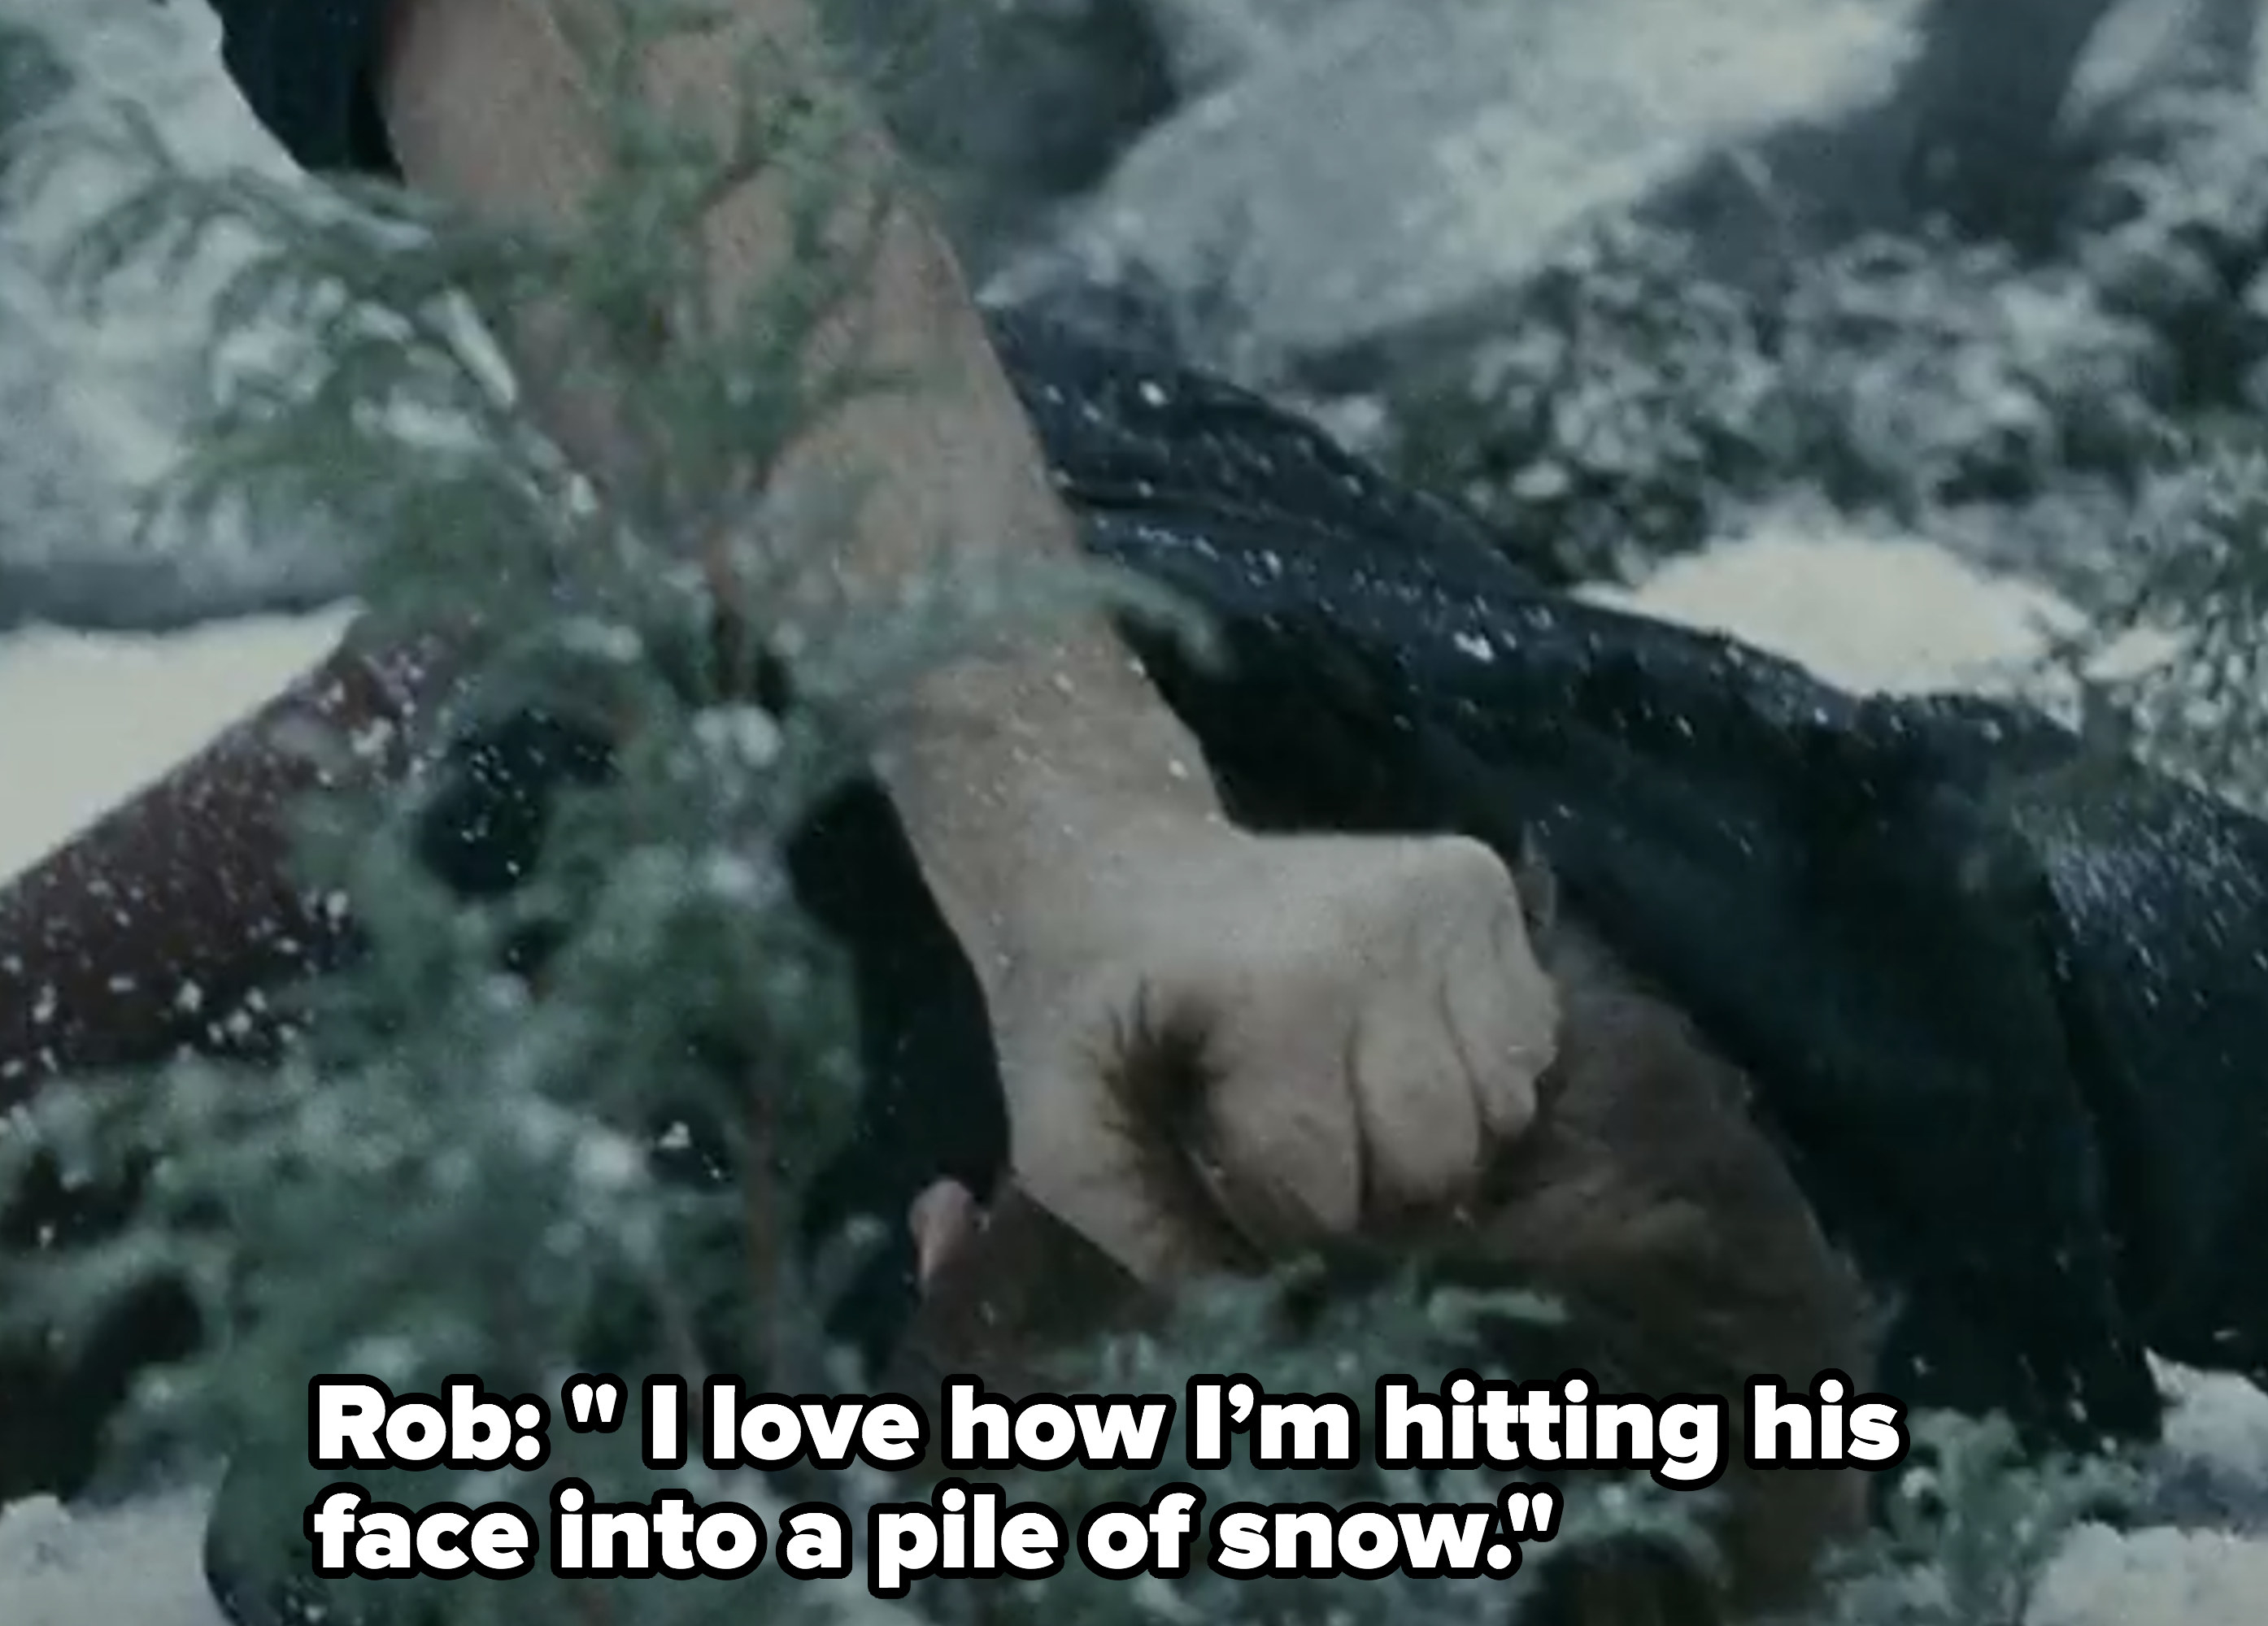 Rob:I love how I'm hitting his face into a pile of snow.